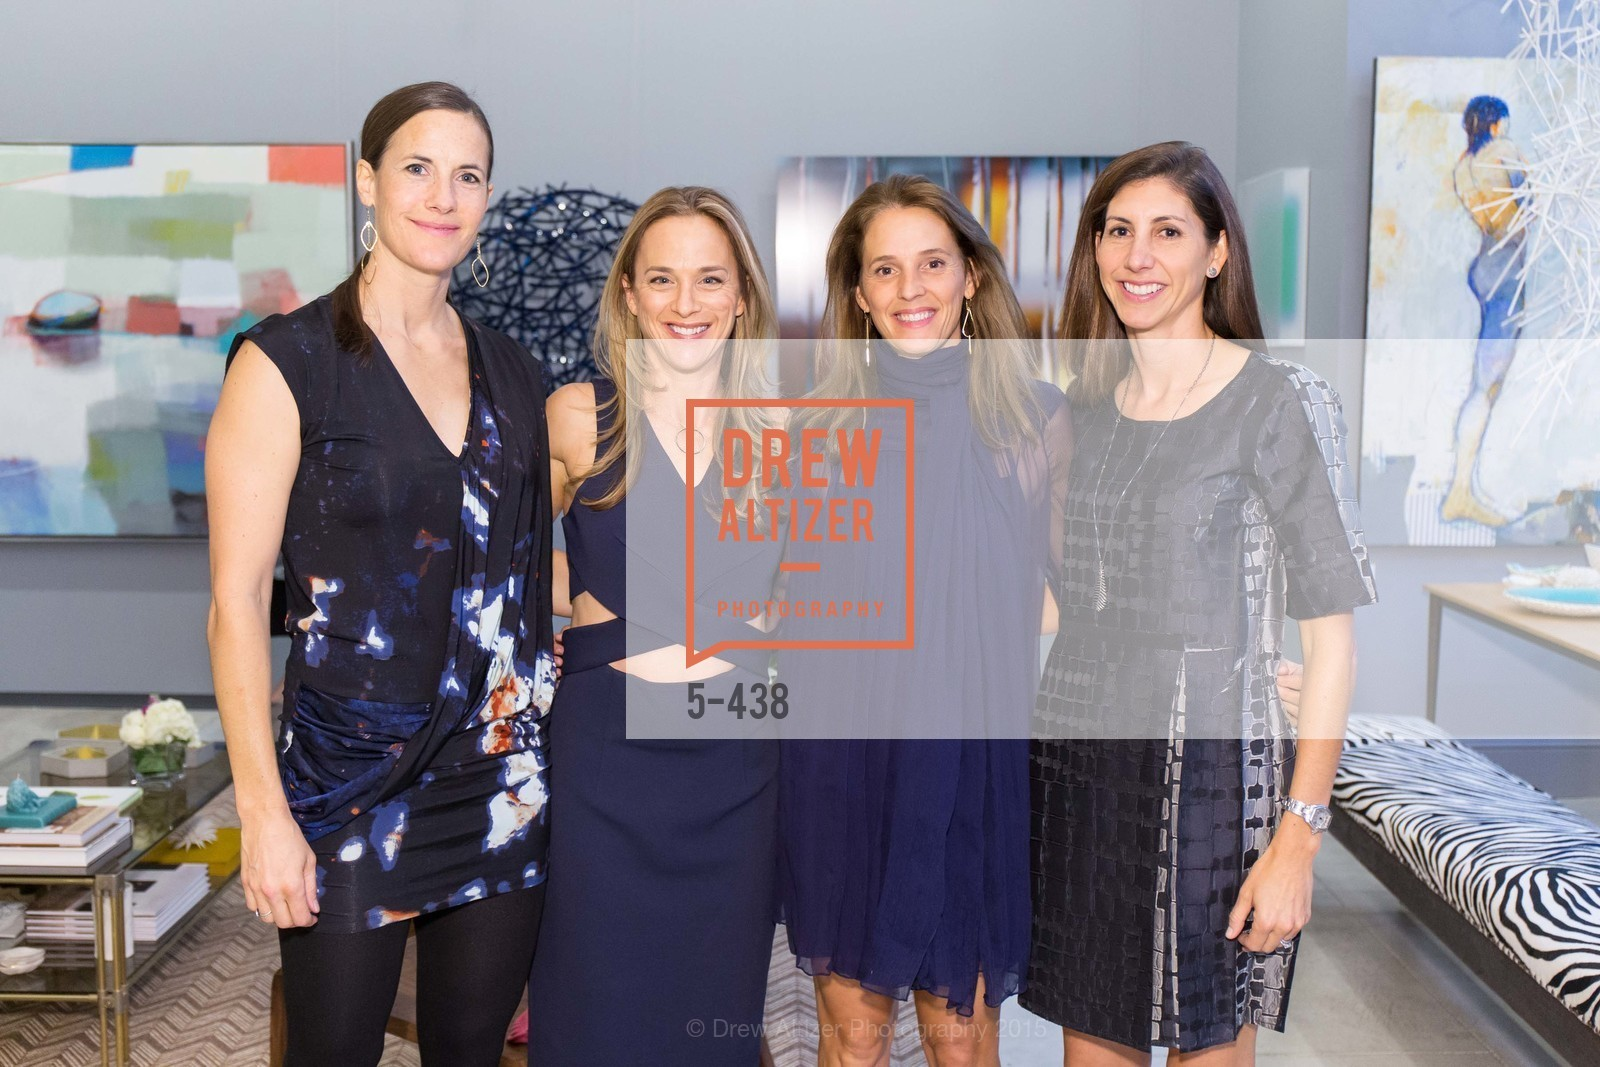 Svea Lin Sol, Stephanie Breitbard, Evie Simon, Tinsley Hutson-Wiley, Stephanie Breitbard Fine Arts San Francisco Opening, Stephanie Breitbard Fine Arts. 843 Montgomery St, November 4th, 2015,Drew Altizer, Drew Altizer Photography, full-service event agency, private events, San Francisco photographer, photographer California